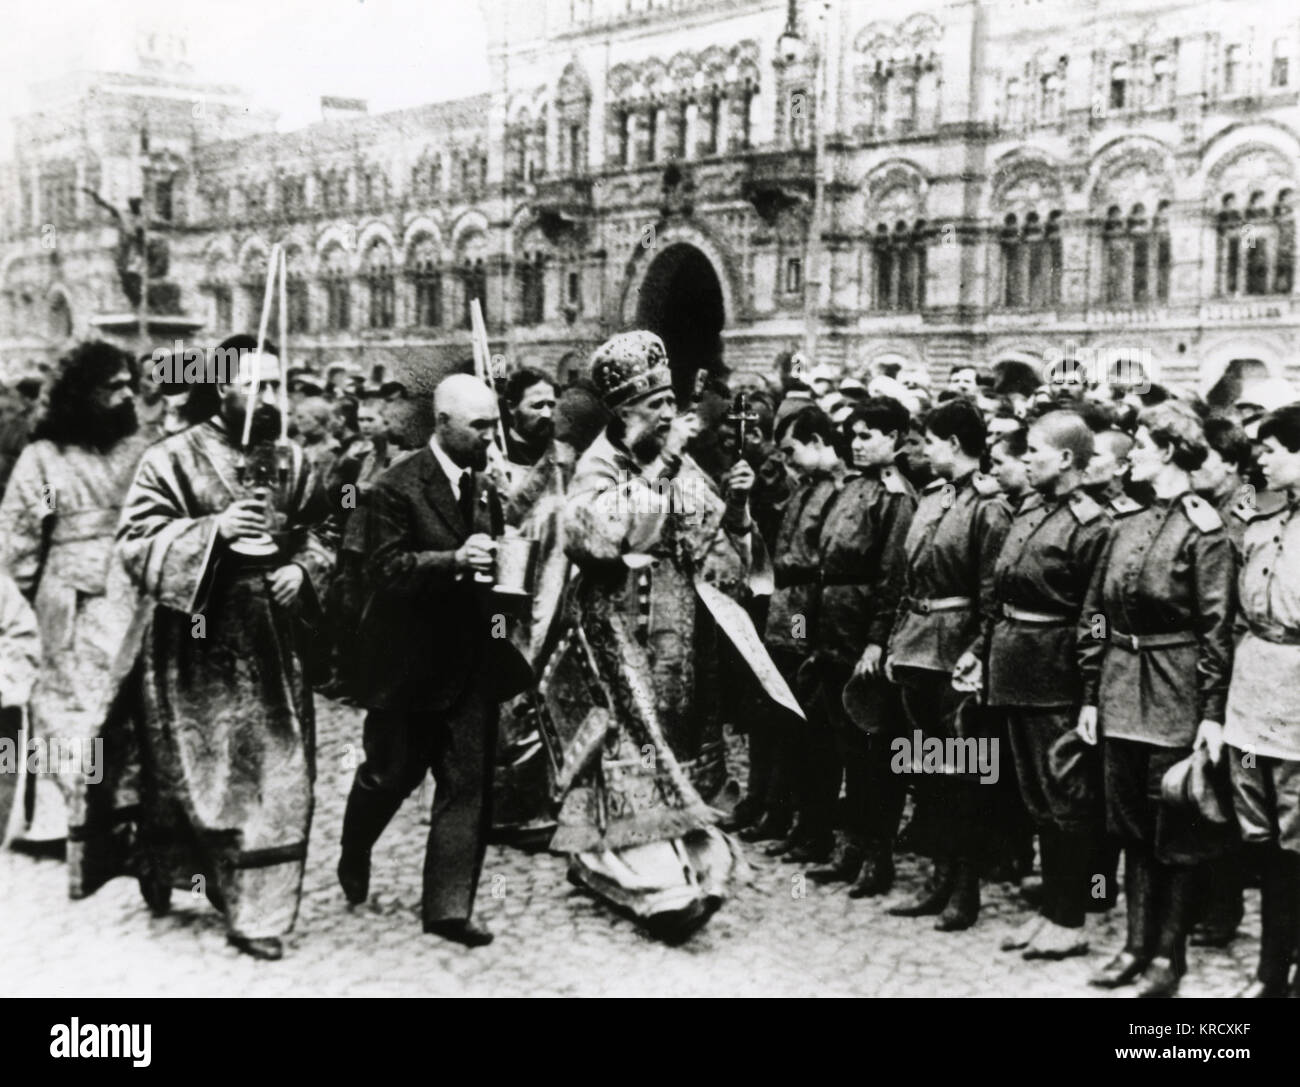 June, 1917 - Red Square, Moscow - Patriarch Nikon blesses members of the famous 'Battalion of Death,' composed - Stock Image